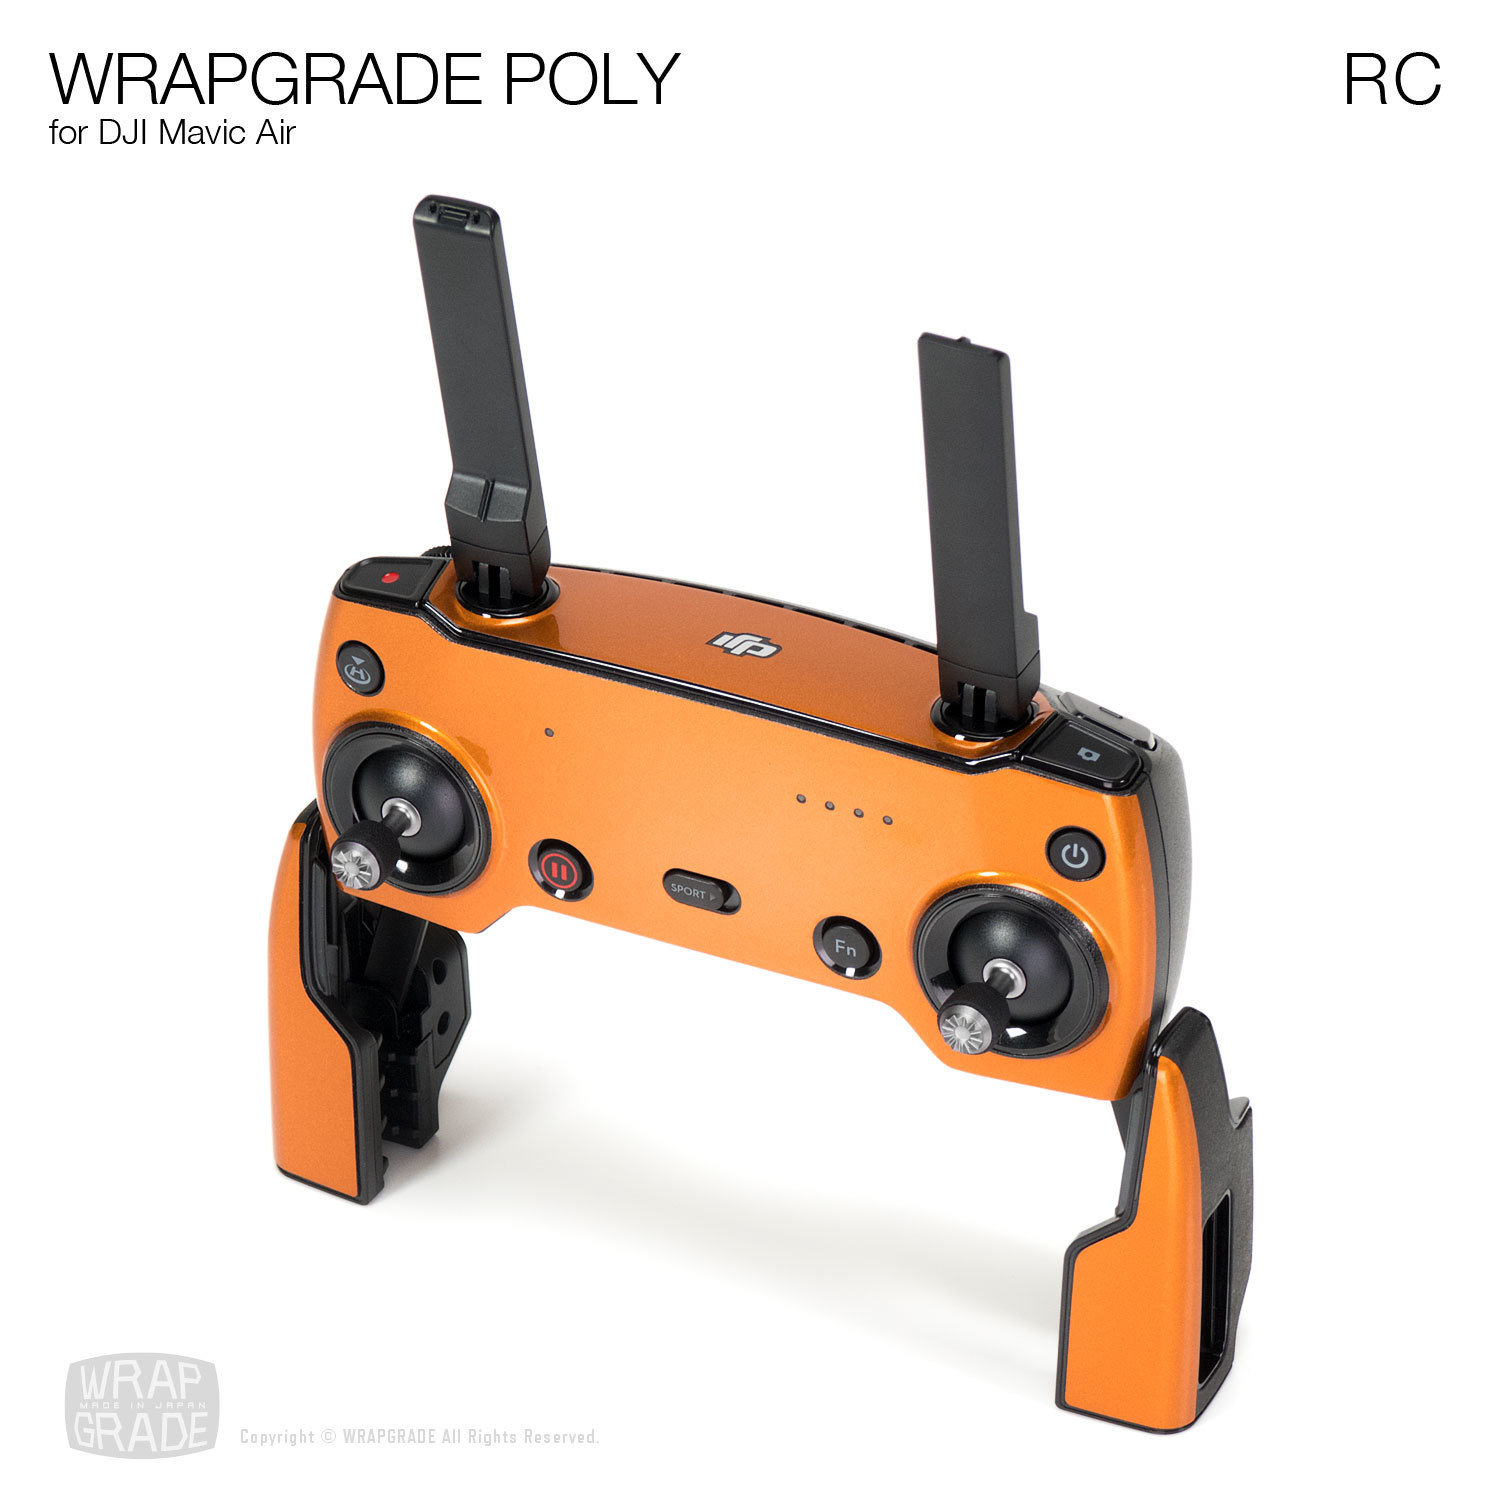 Wrapgrade Poly Skin for DJI Mavic Air | RC (20 colors)